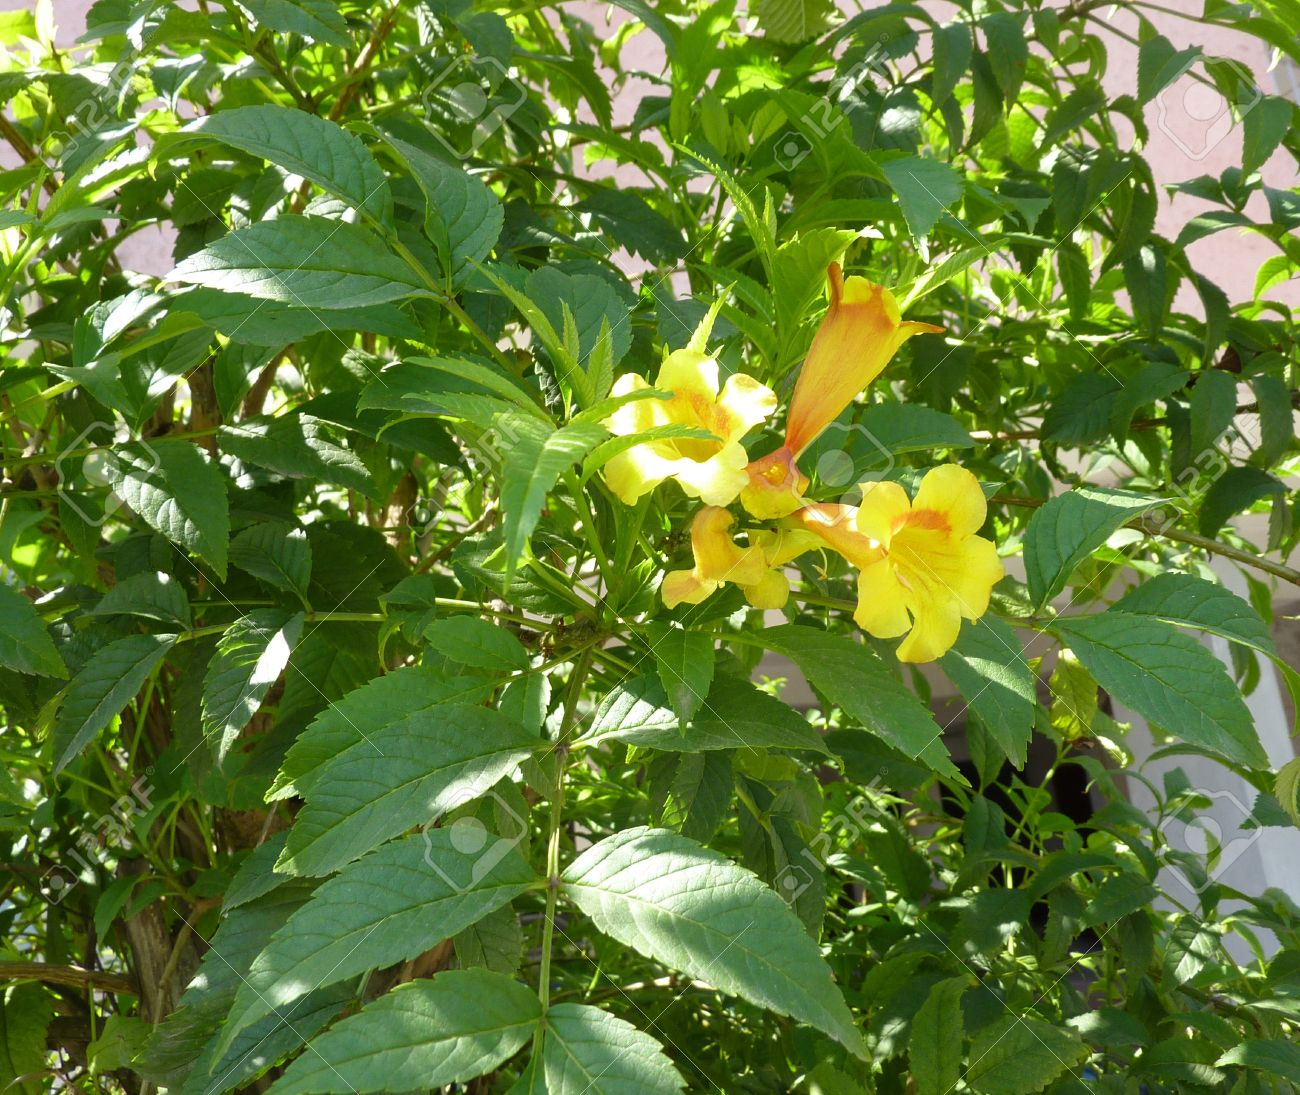 Tecoma stans yellow trumpetbush family bignoniaceae shrub stock stock photo tecoma stans yellow trumpetbush family bignoniaceae shrub with pinnate compound leaves and golden yellow flowers in clusters mightylinksfo